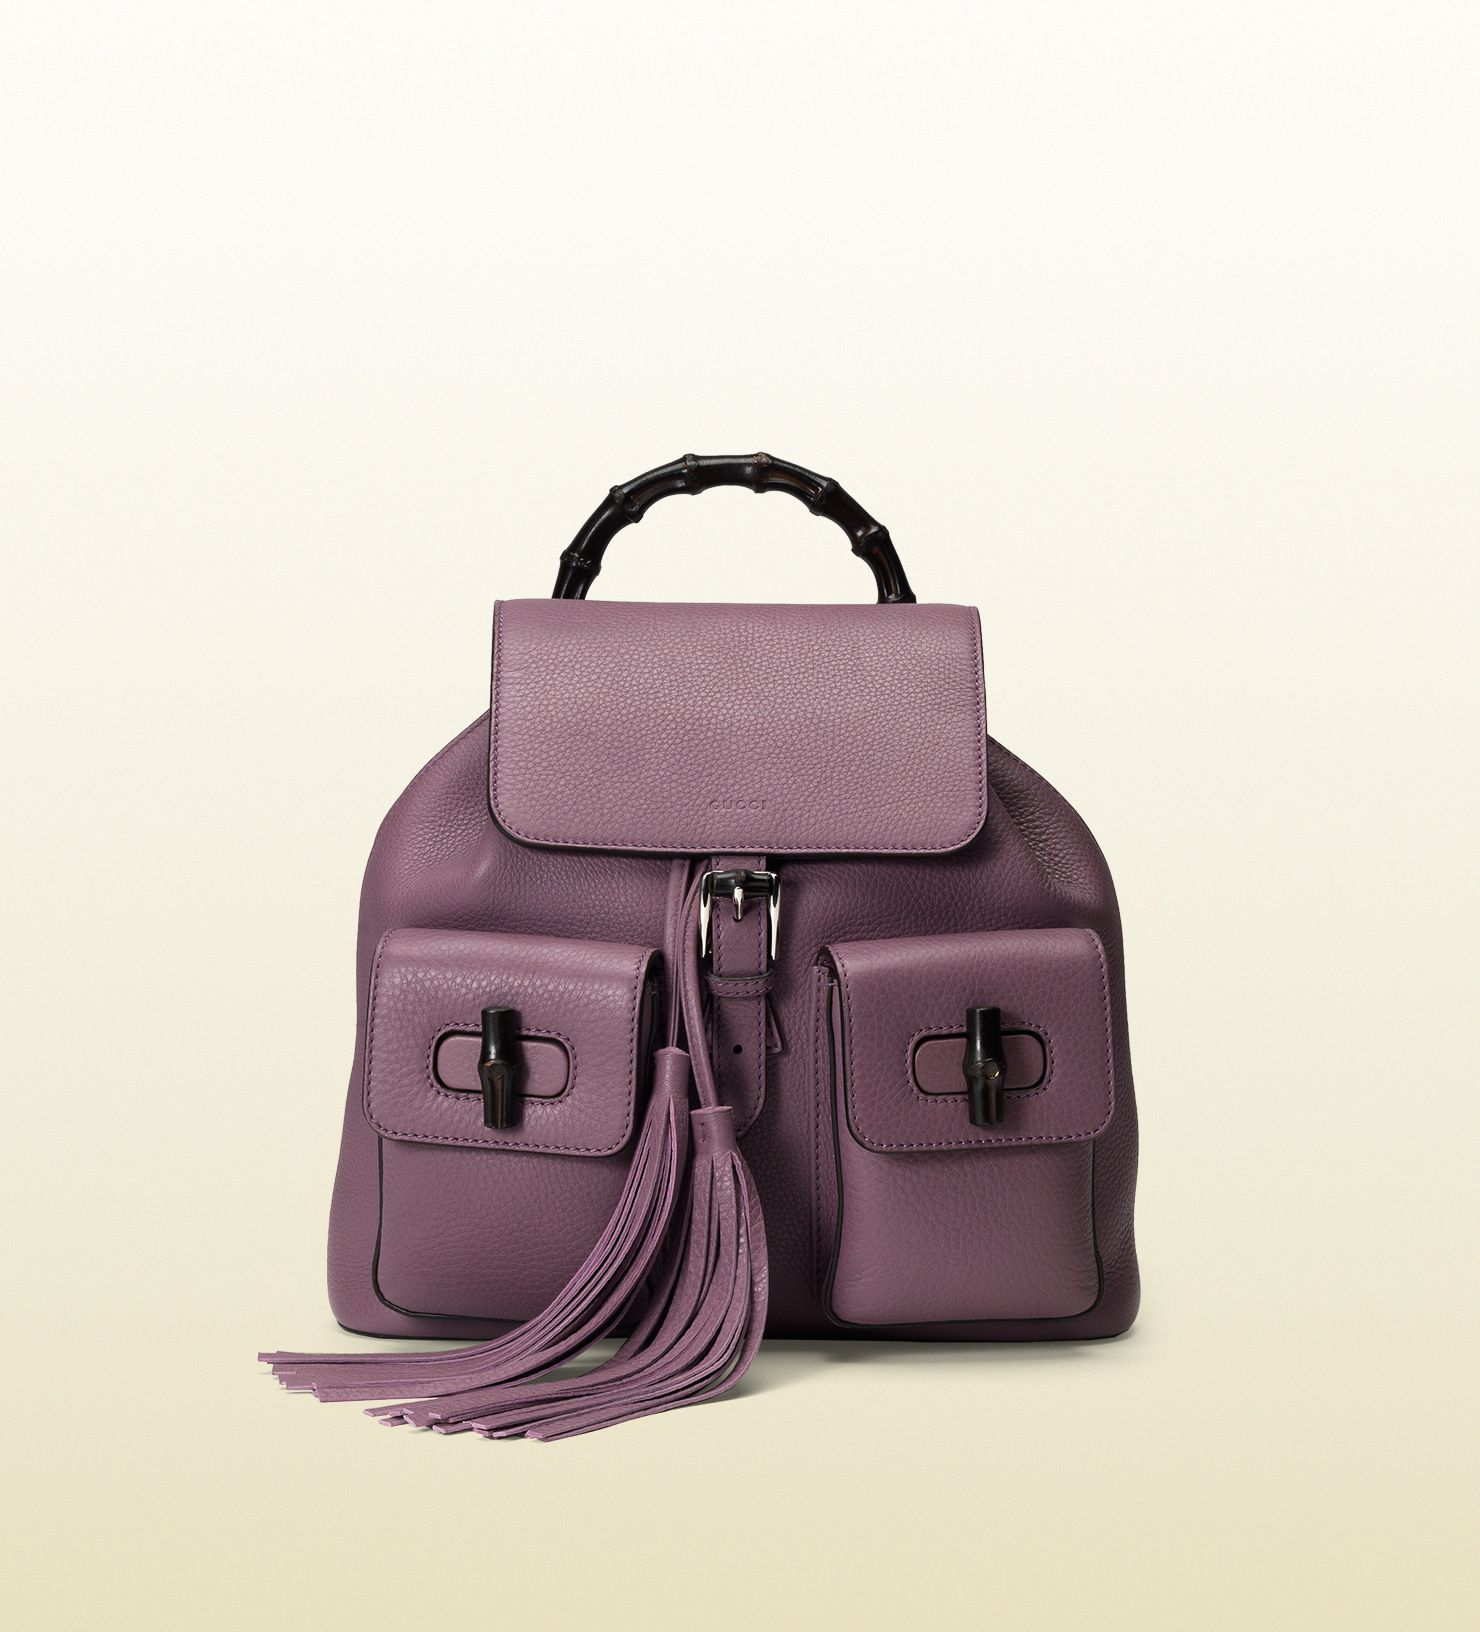 48578a9a1543 Gucci - bamboo leather backpack 370833A7M0N5034 | Obsession: Bags ...